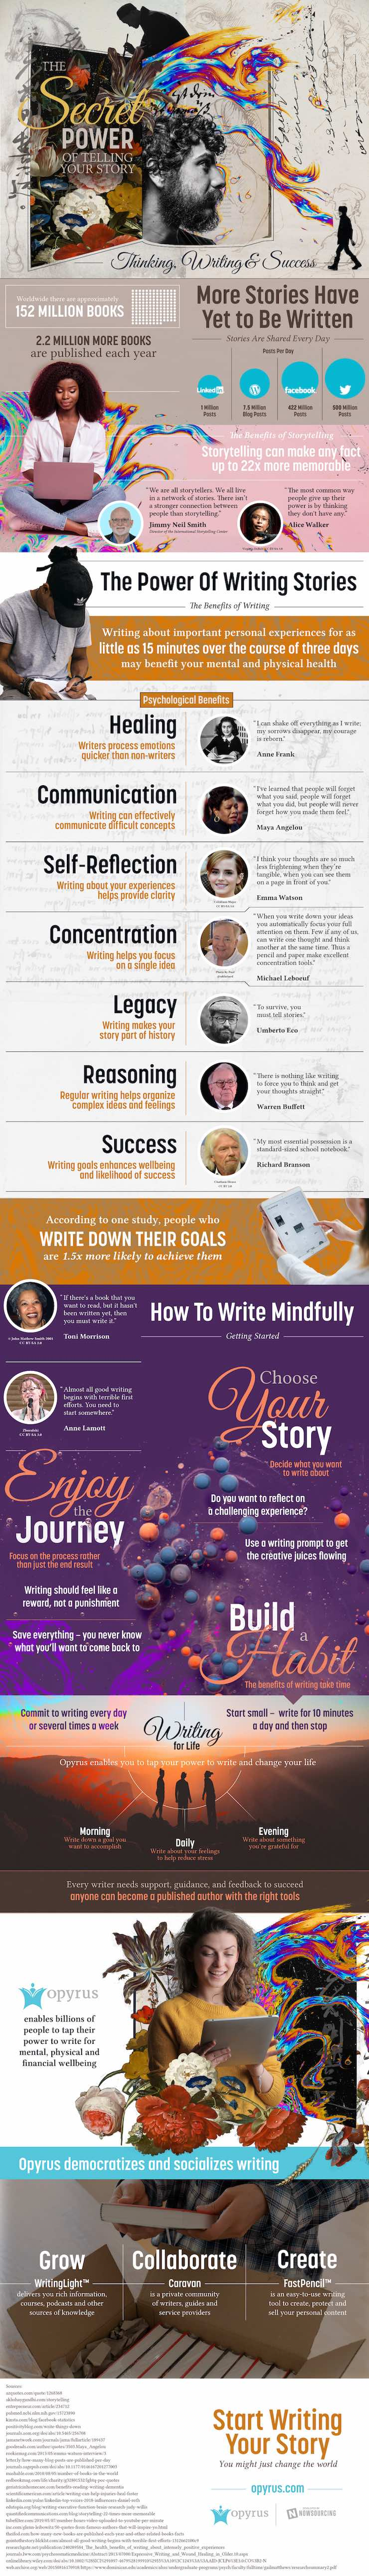 The secret power of telling your story infographic from Opyrus